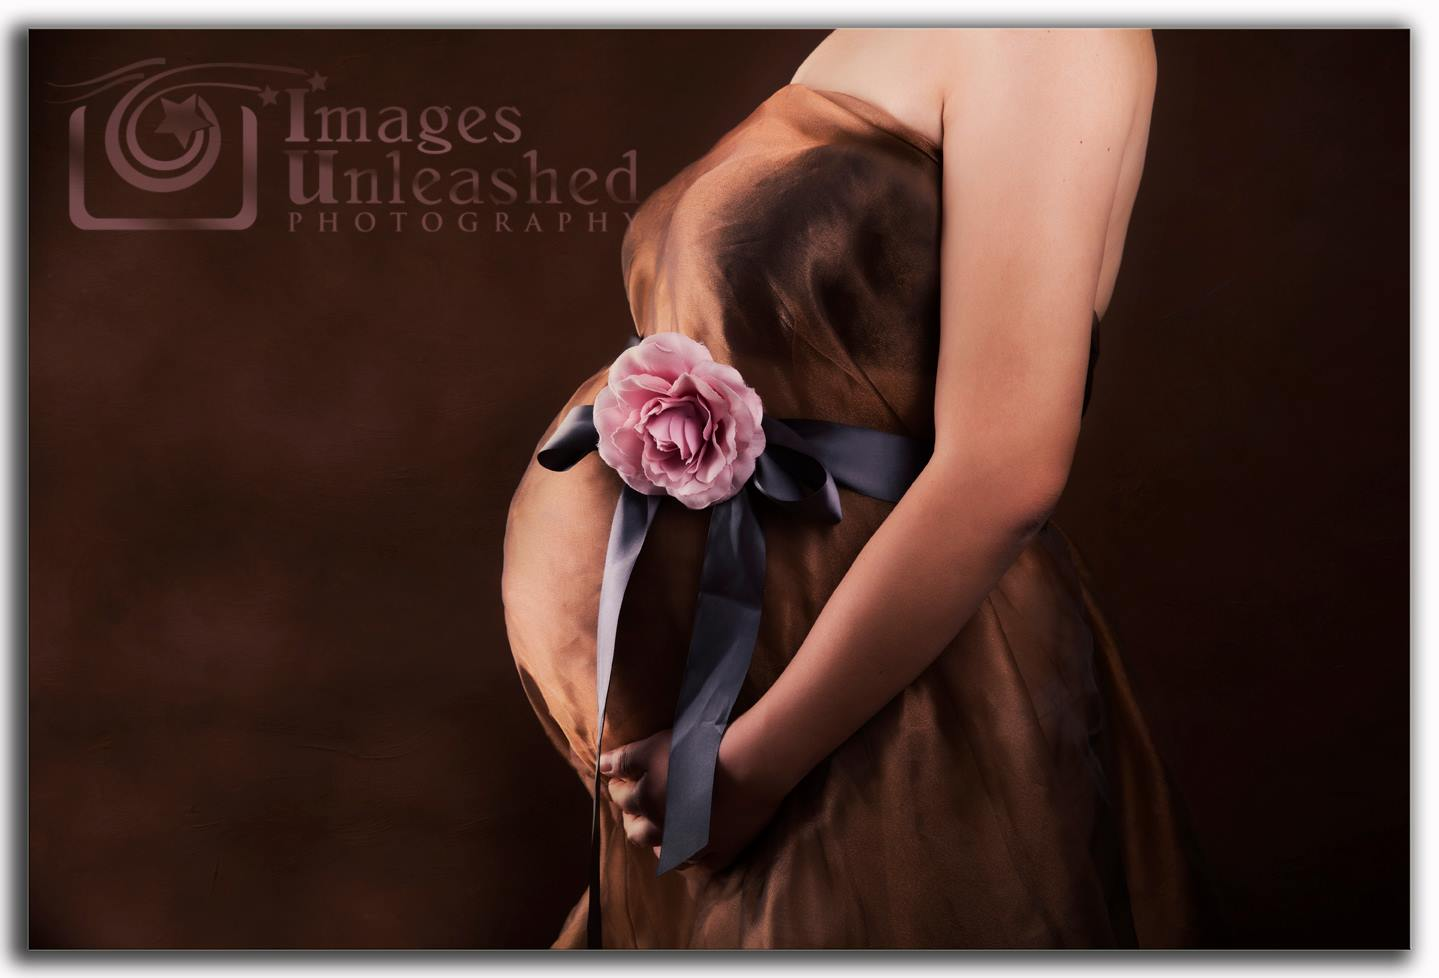 Imgaes-Unleashed-photography-Newborn-Baby-002